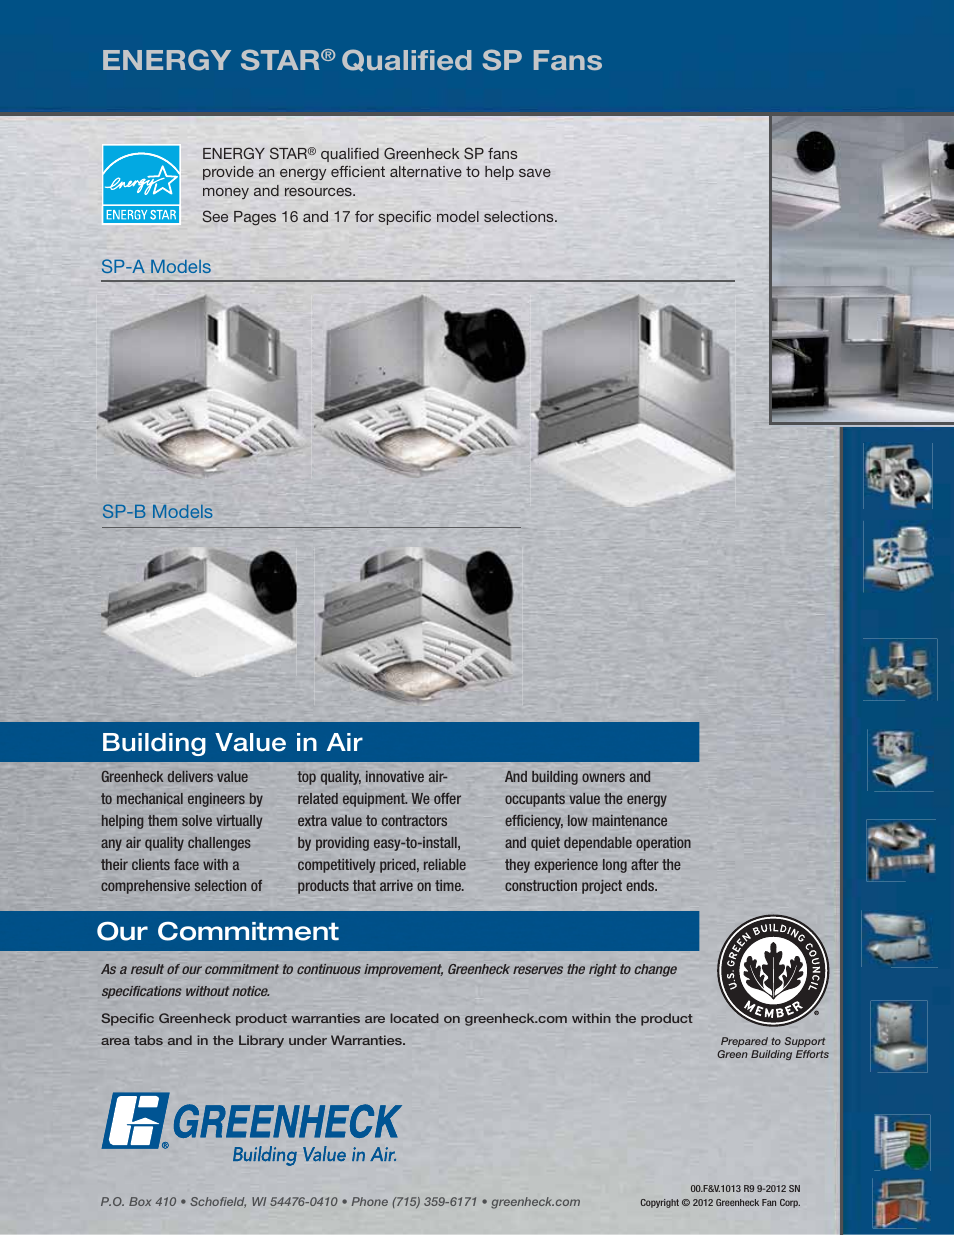 Energy star qualified sp fans building value in air greenheck energy star qualified sp fans building value in air greenheck fan centrifugal ceiling and cabinet exhaust fans csp user manual page 24 24 aloadofball Choice Image